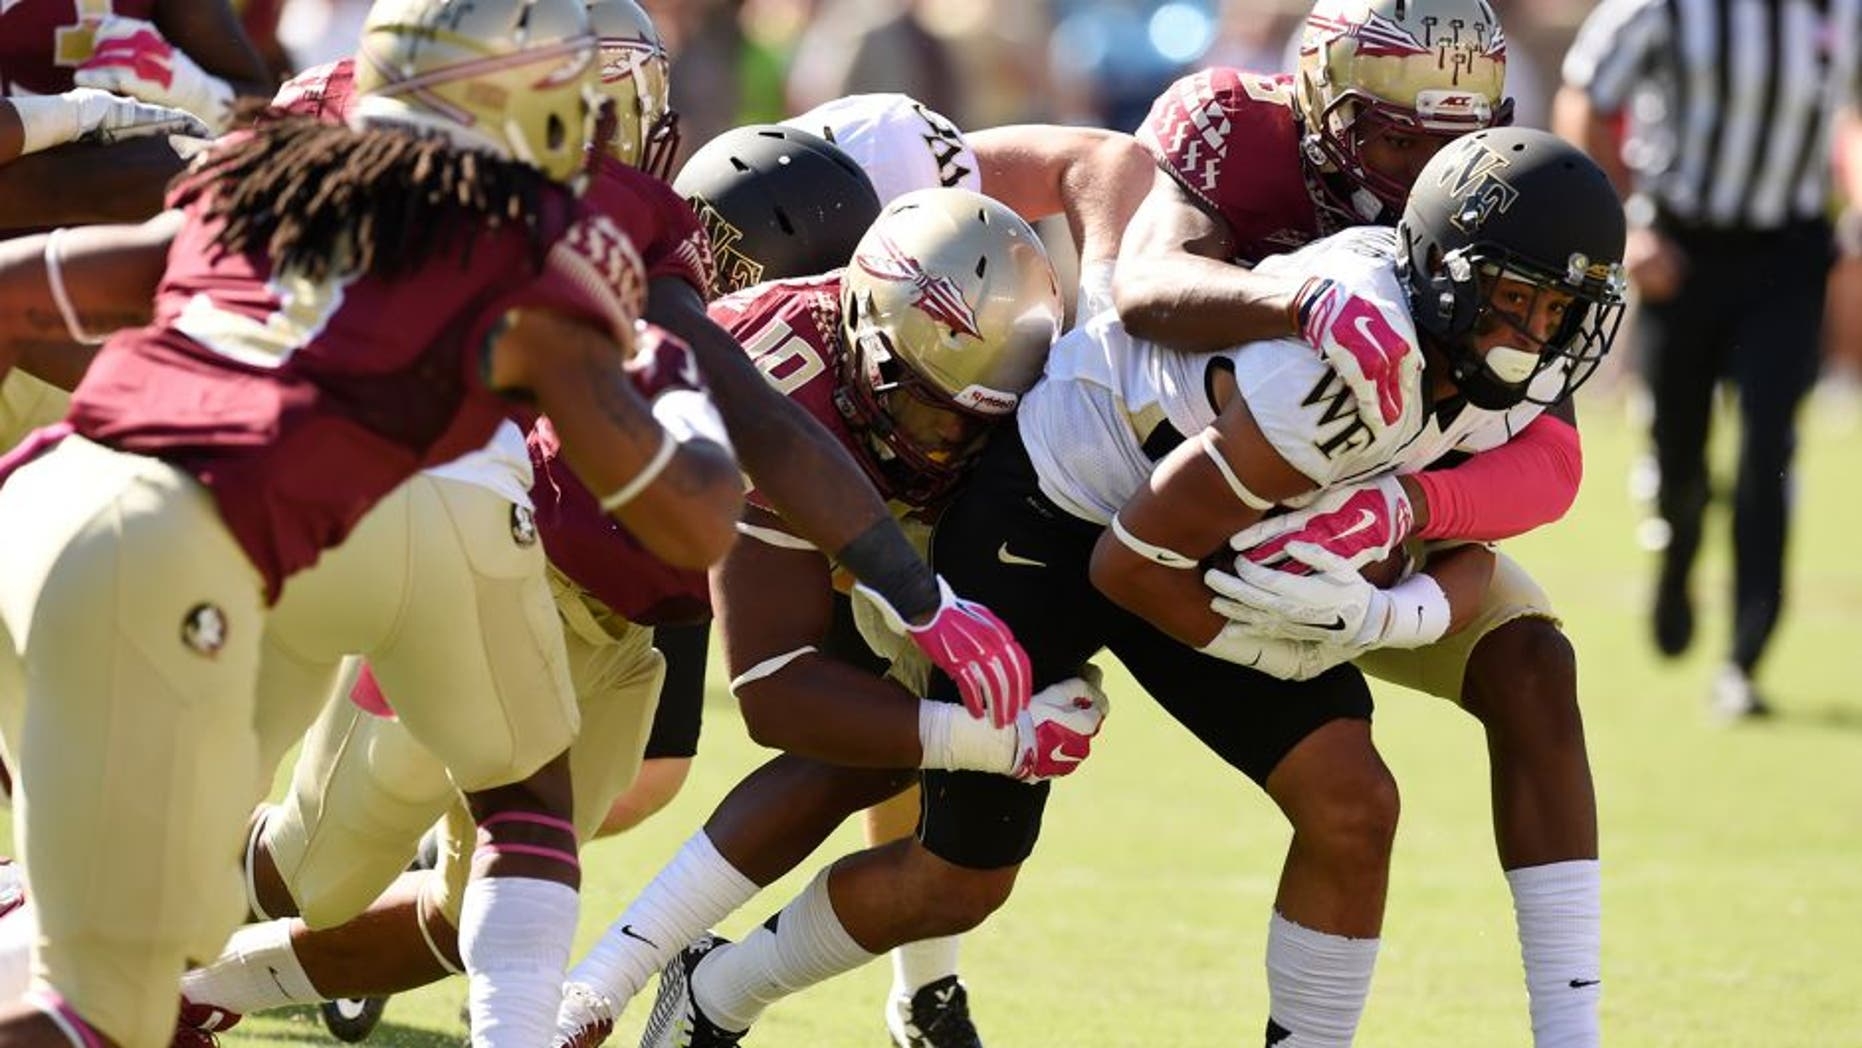 Oct 4, 2014; Tallahassee, FL, USA; Wake Forest Demon Deacons wide receiver Jared Crump (88) gets wrapped up by Florida State Seminoles linebacker E.J. Levenberry (10) and defensive back Jalen Ramsey (8) during the first quarter at Doak Campbell Stadium. Mandatory Credit: John David Mercer-USA TODAY Sports